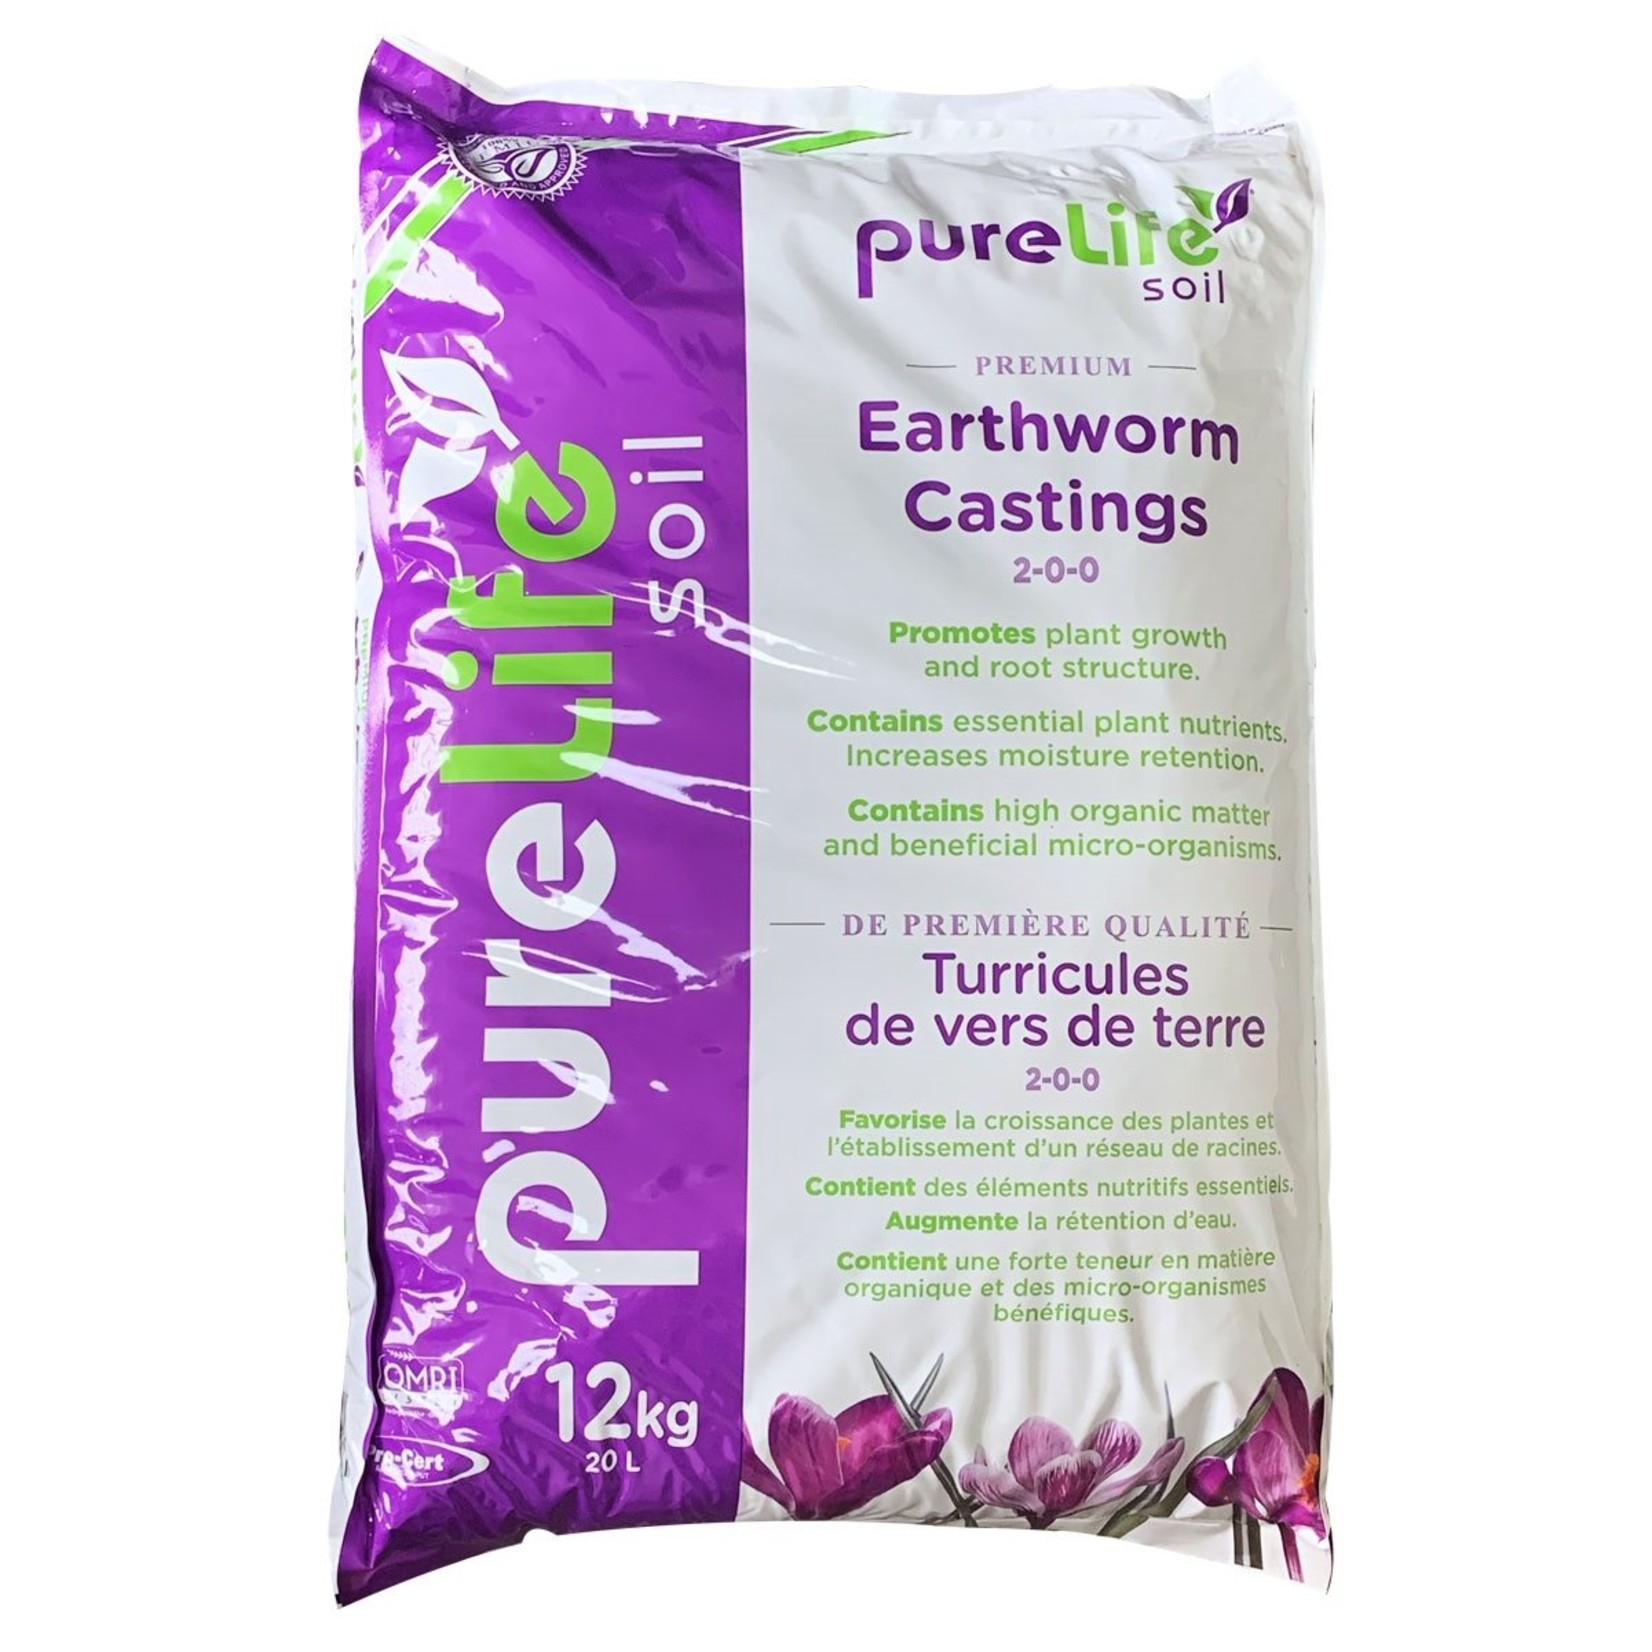 Pure Life Soil Earth worm Castings 20L